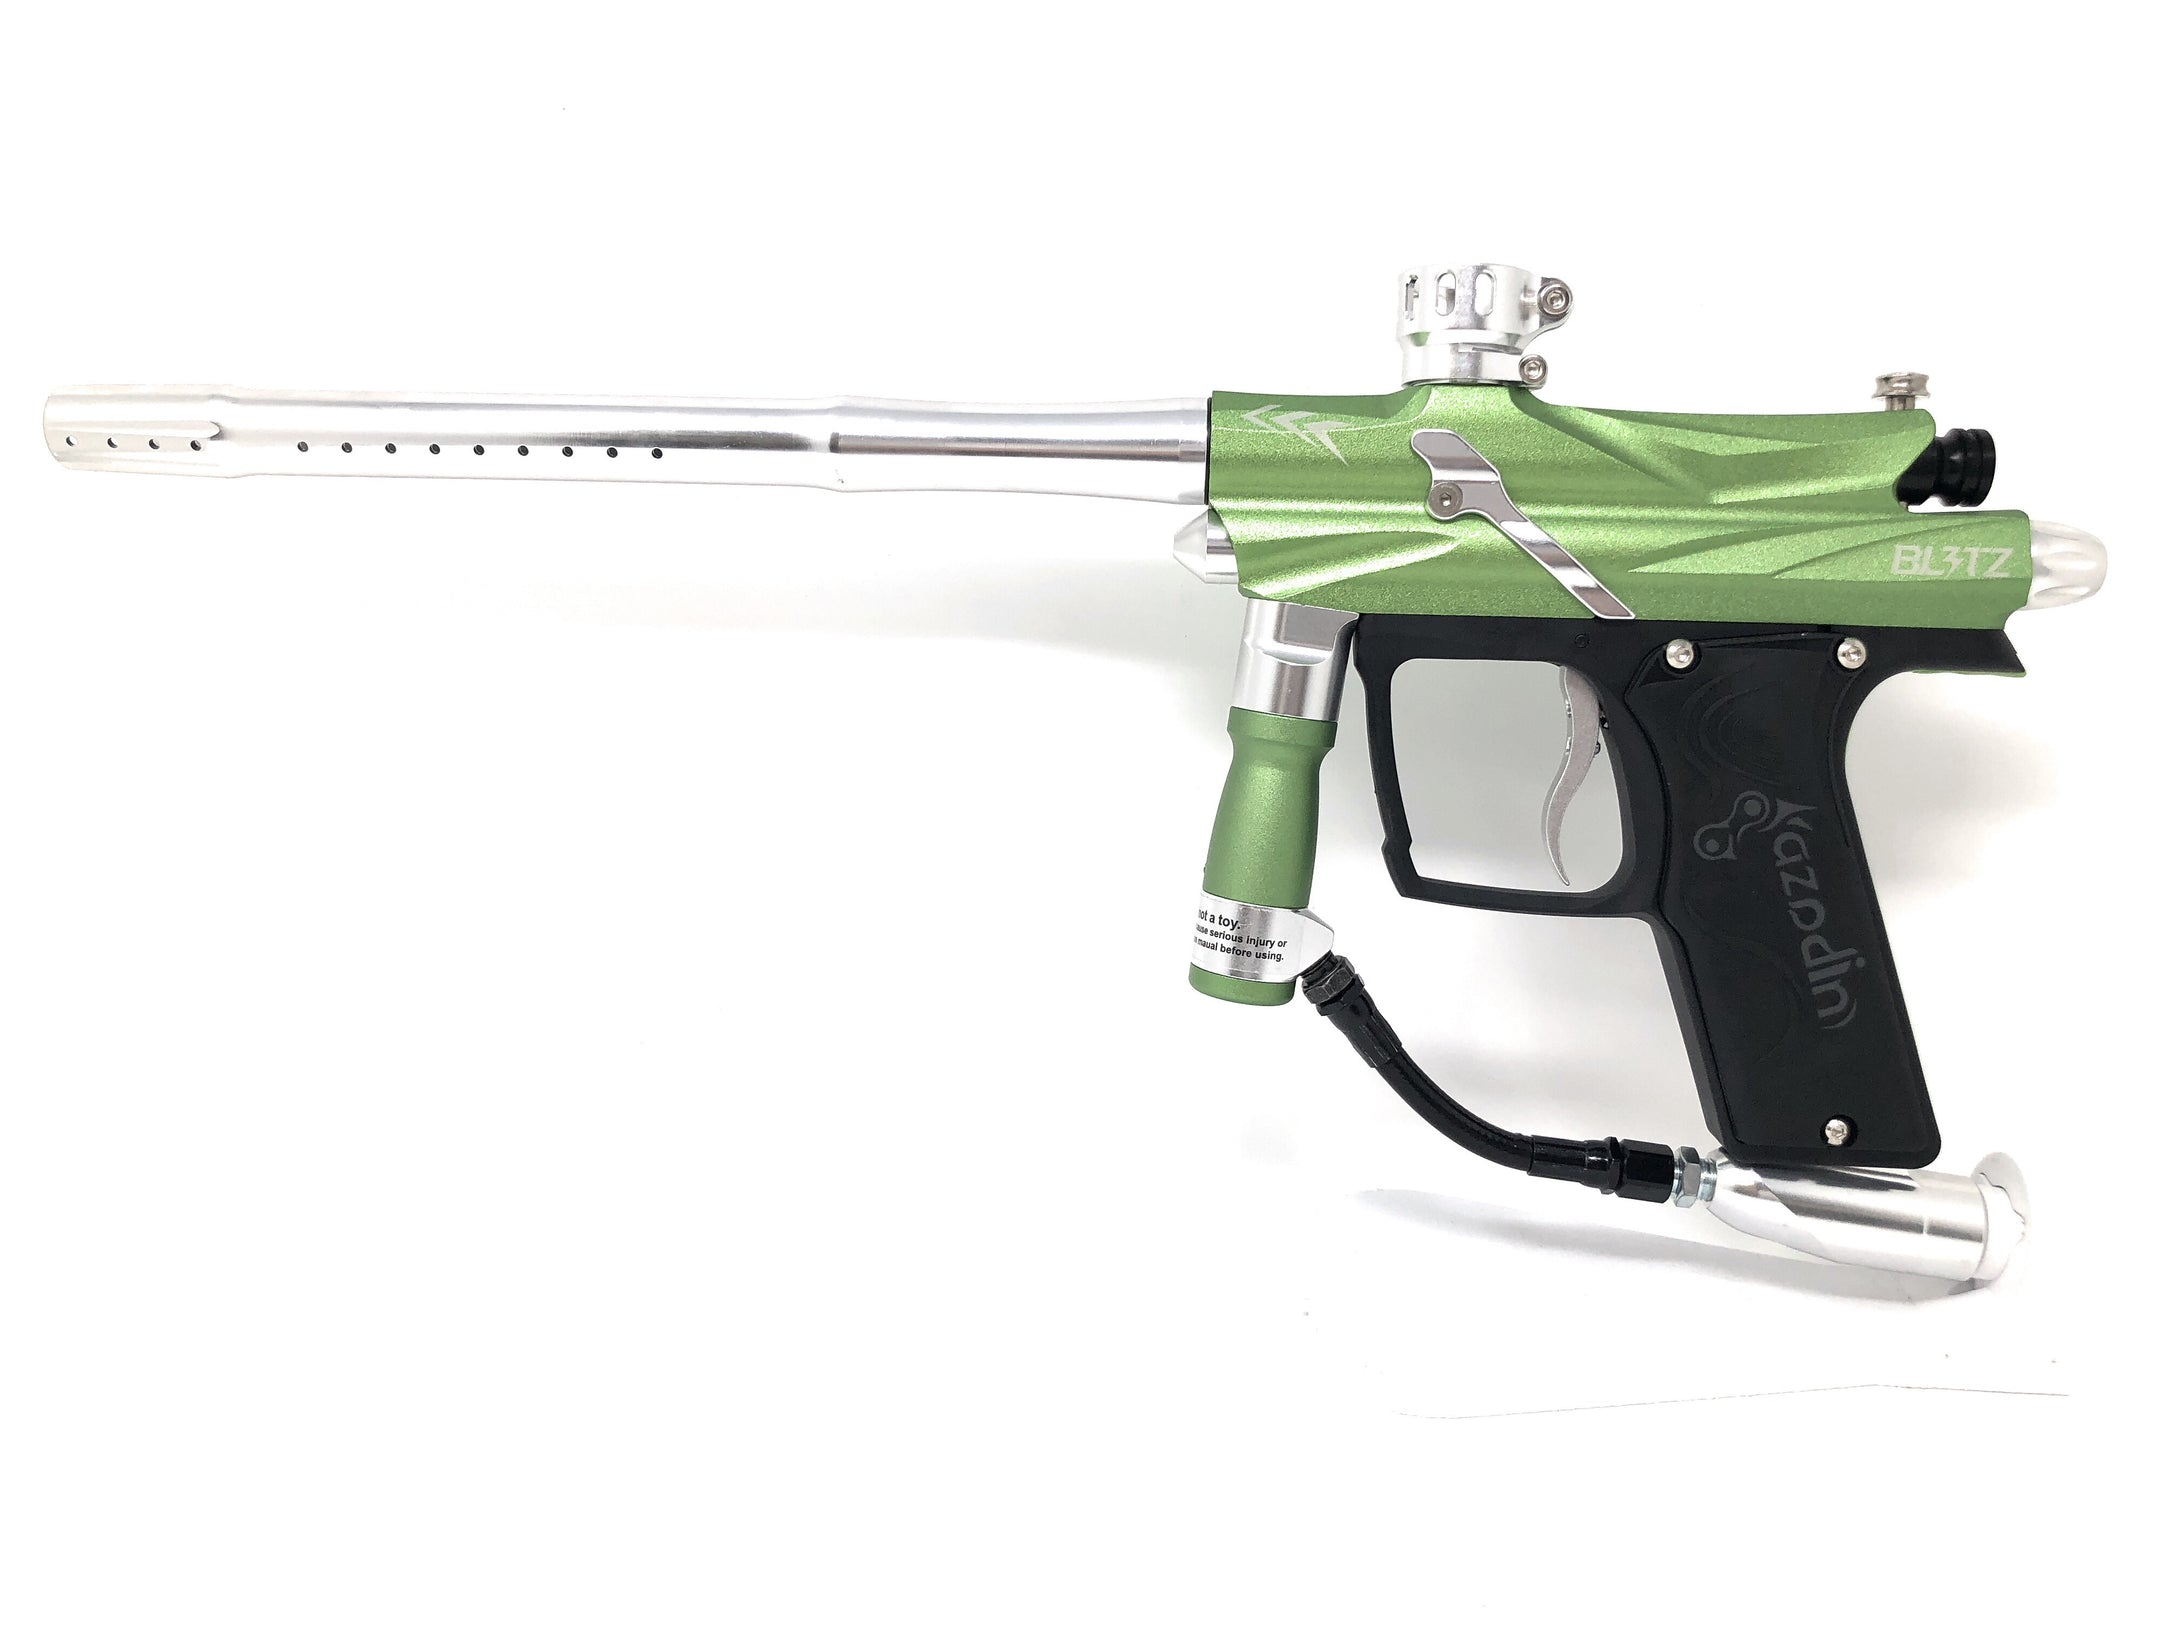 Photos of Azodin Blitz 3 Paintball Marker - Green/Silver. Photo taken by drpaintball.com